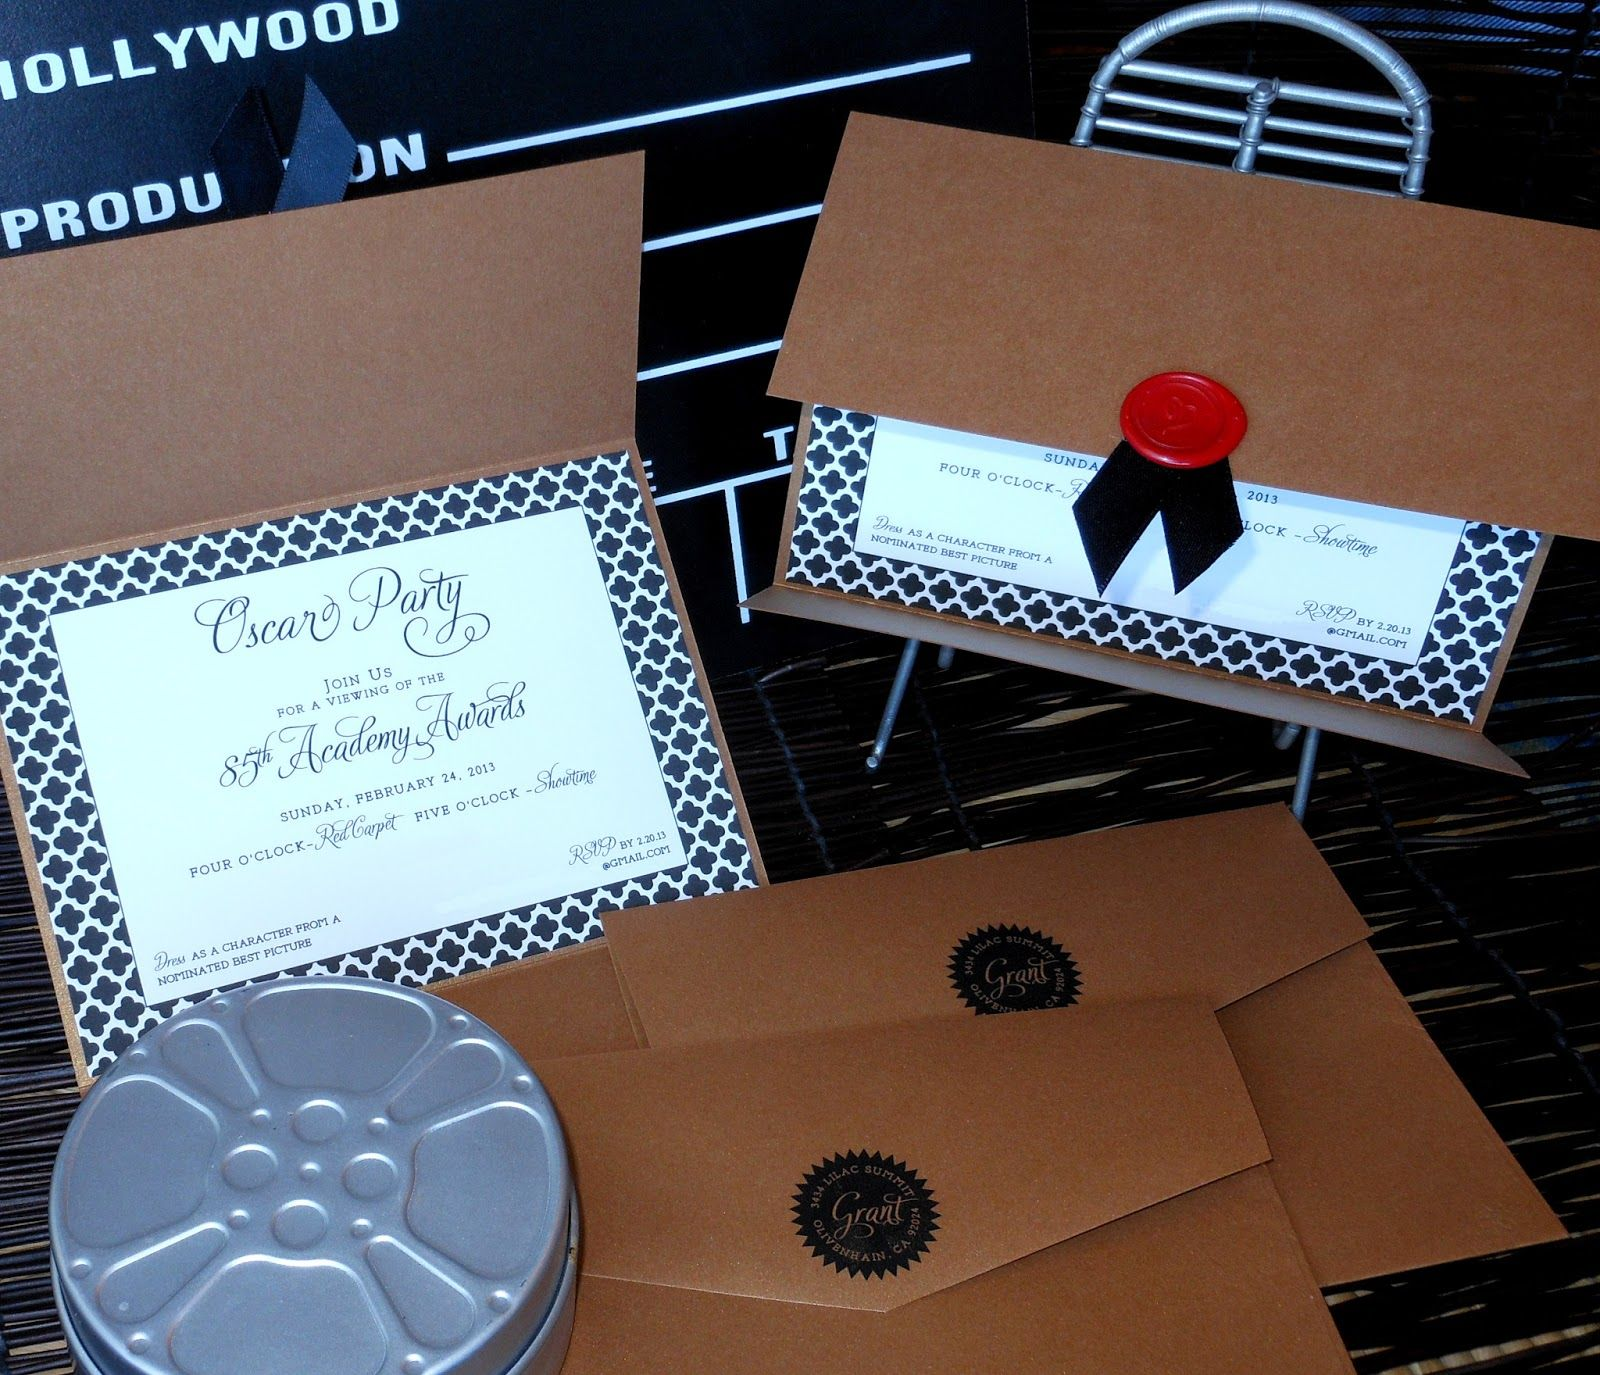 Oscar Party Academy Awards Invitations by Kim Grant Ink